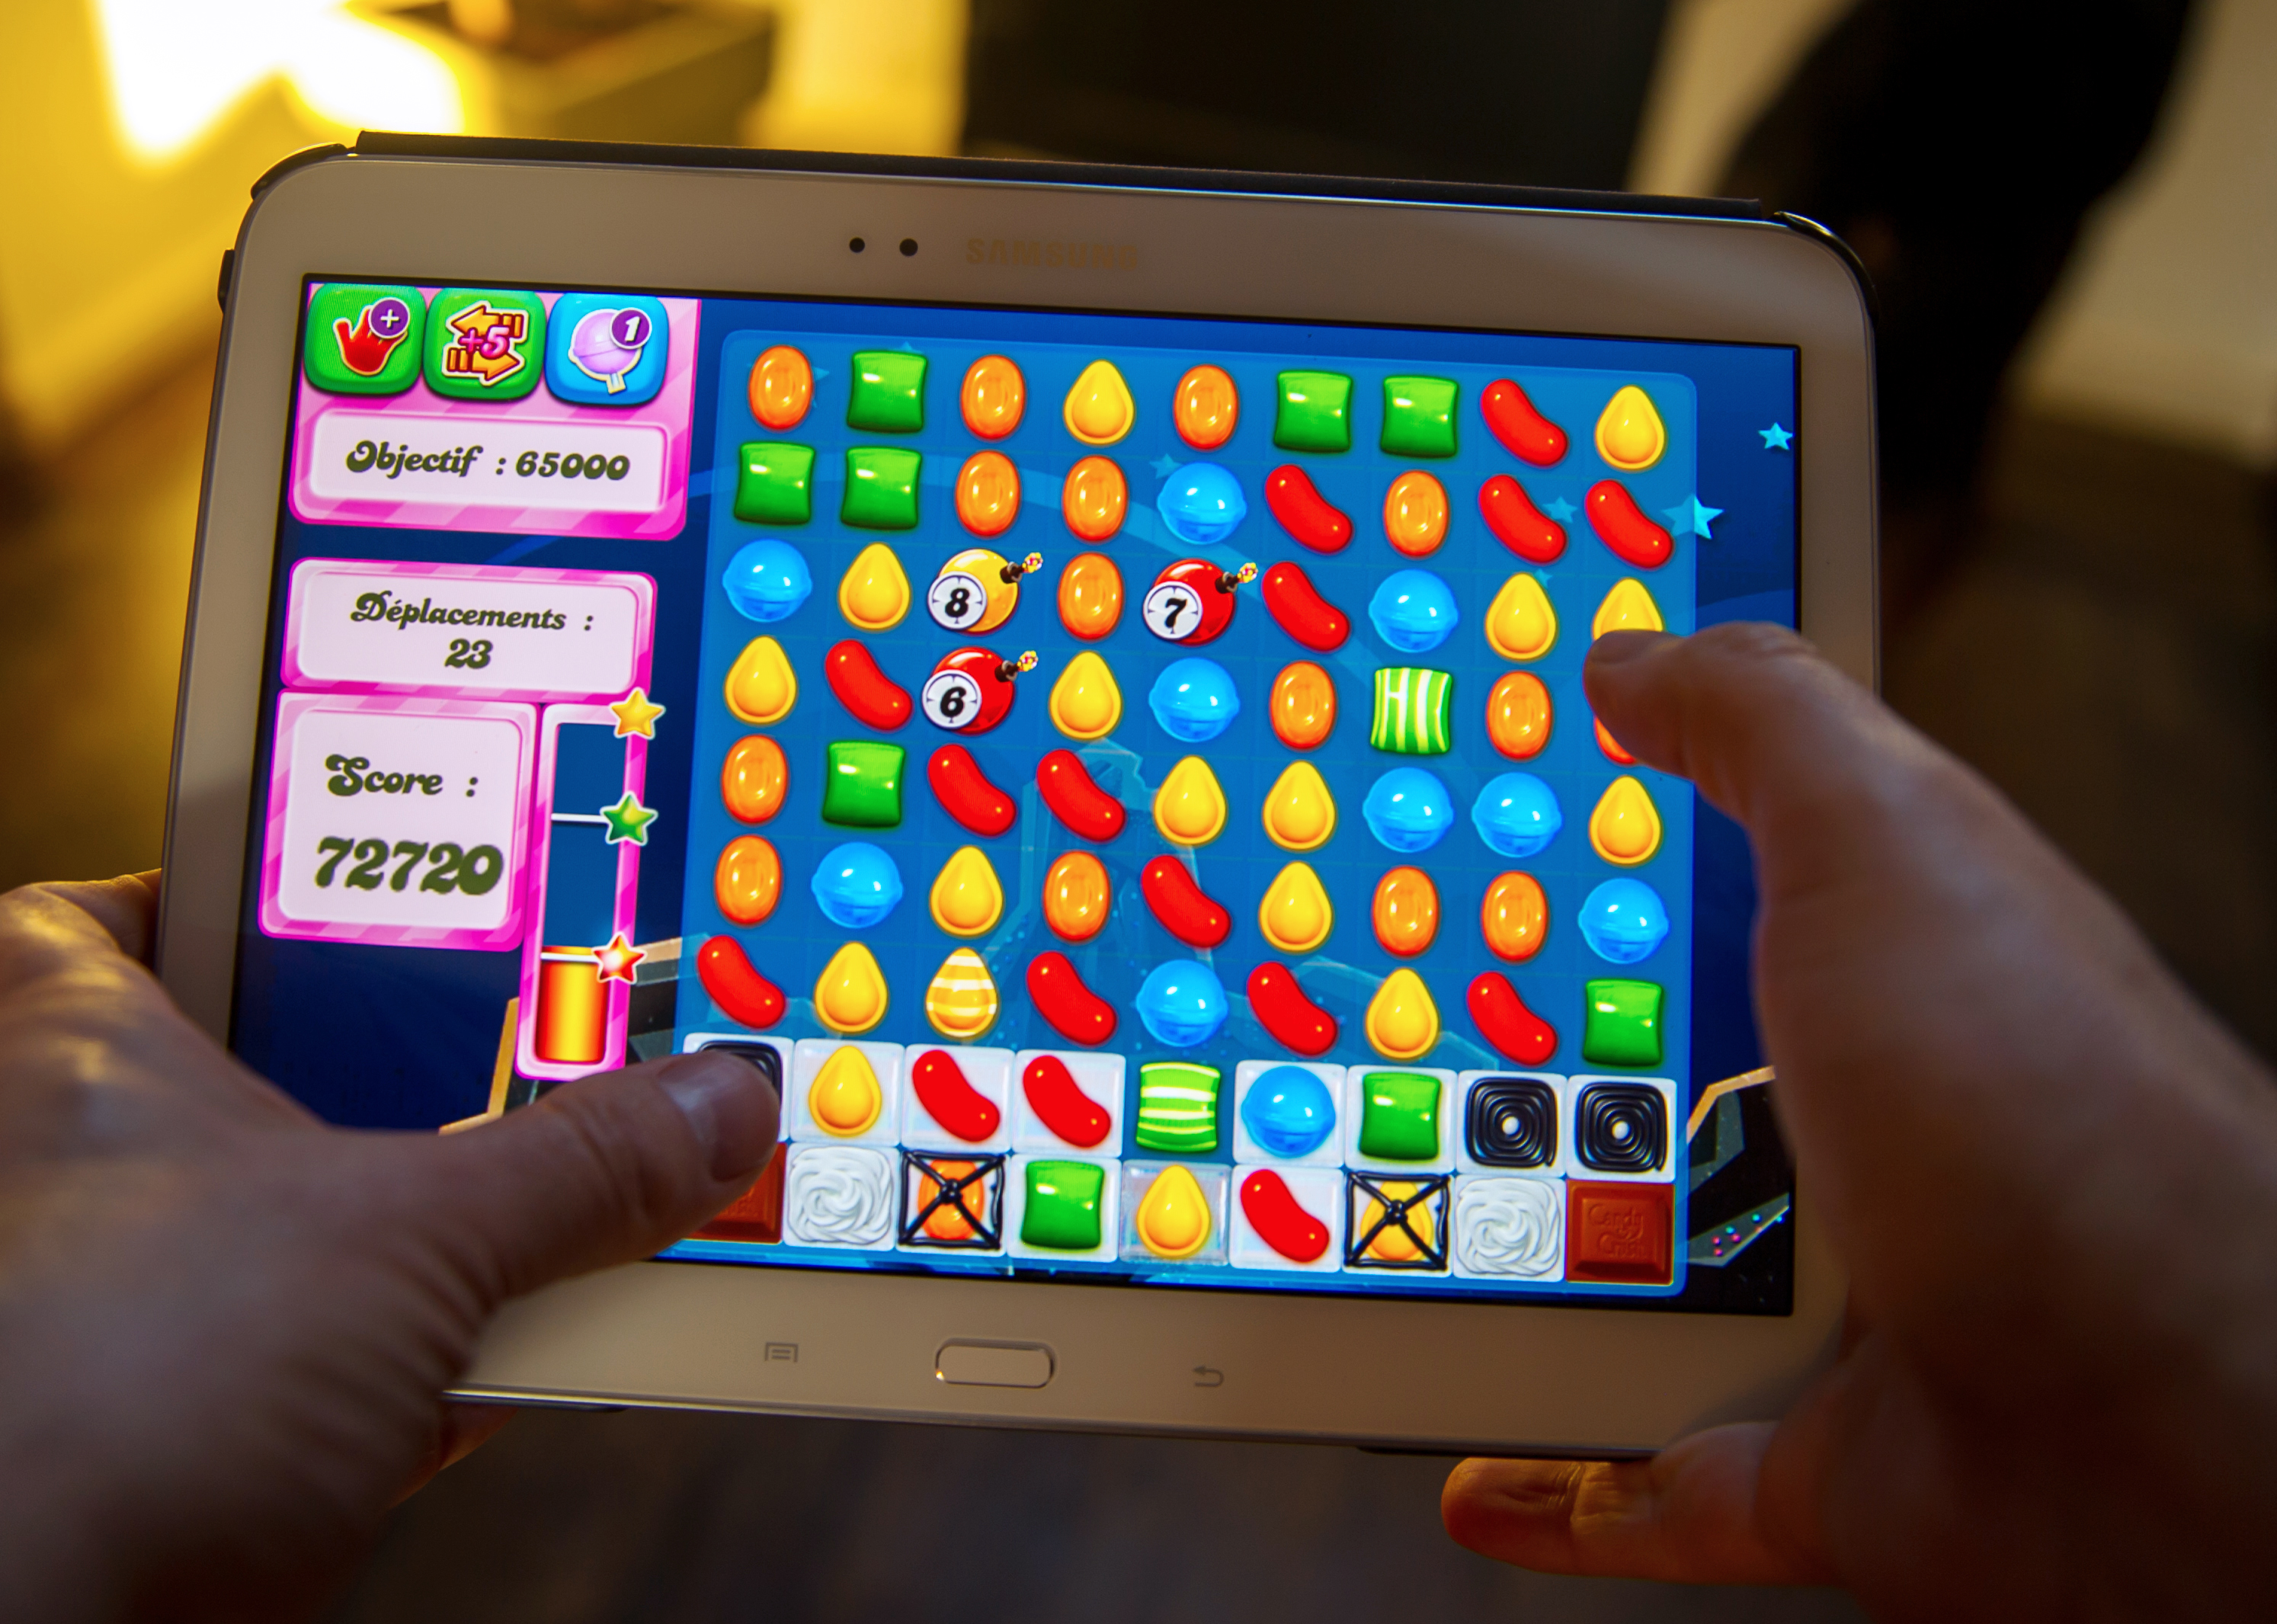 Candy Crush Saga developer King begins trading at $20.50 per share